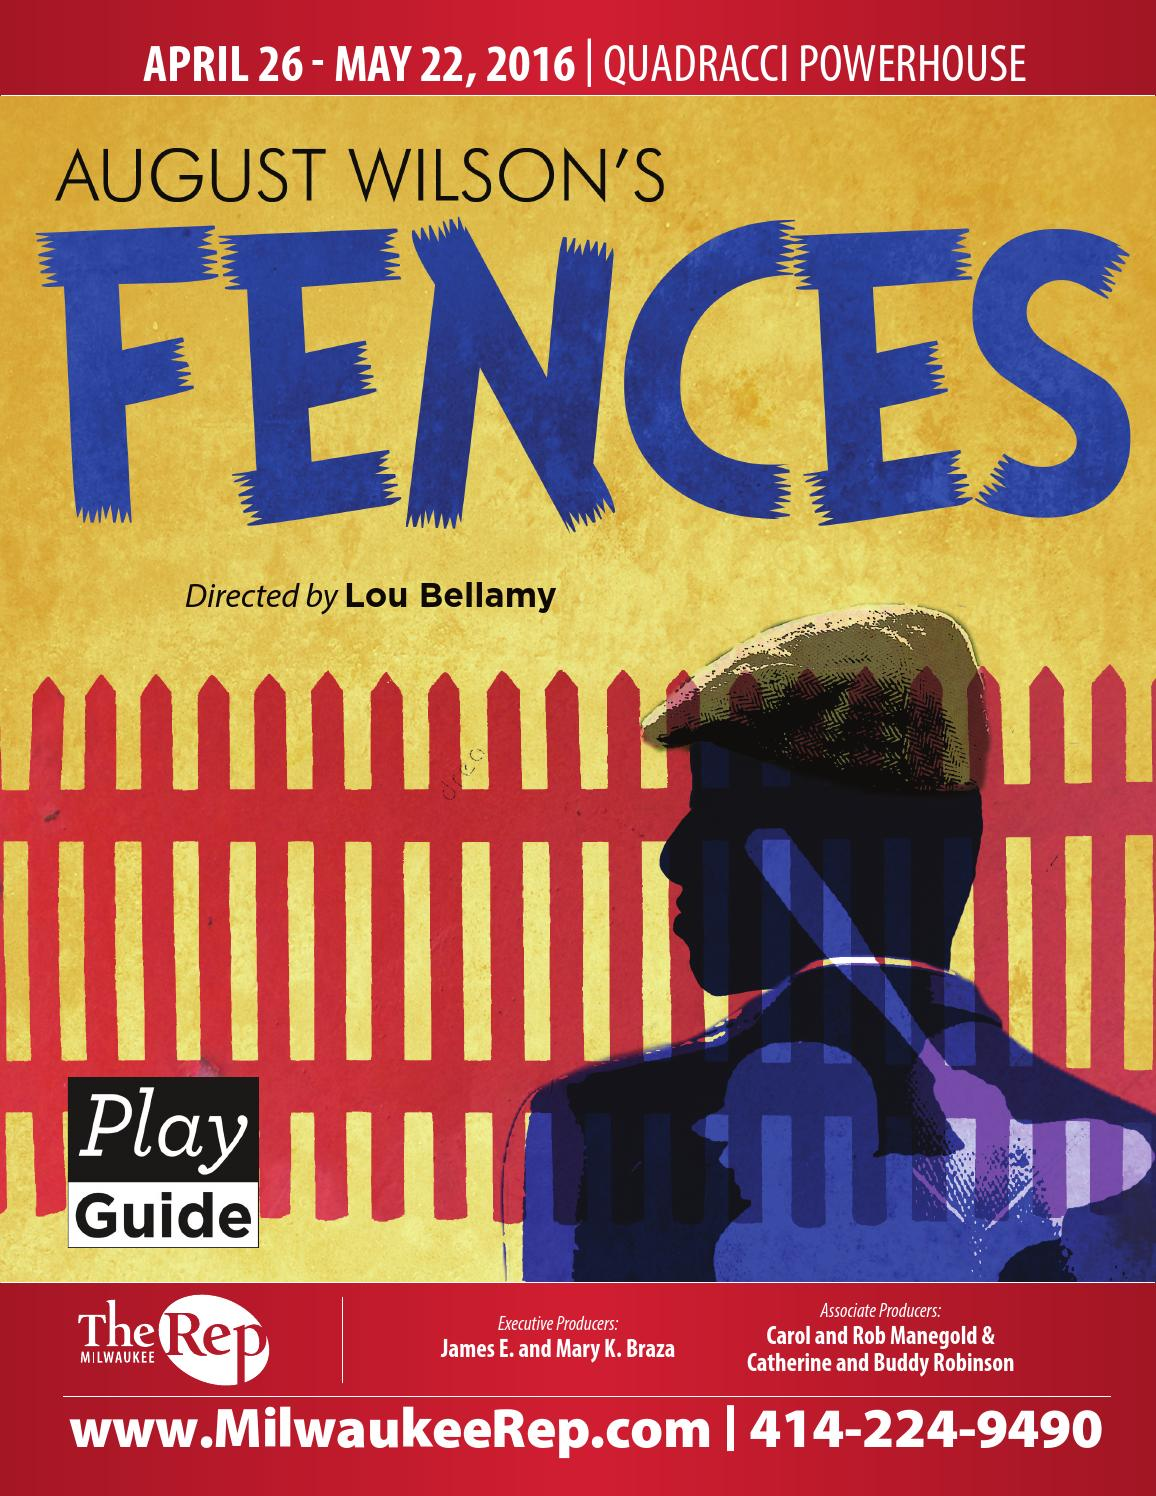 a plot summary of augustine wilsons play fences This one-page guide includes a plot summary and brief analysis of fences by august wilson the play fences is about troy maxson, a middle-aged black man, and his struggles to provide for his family in the 1950s.